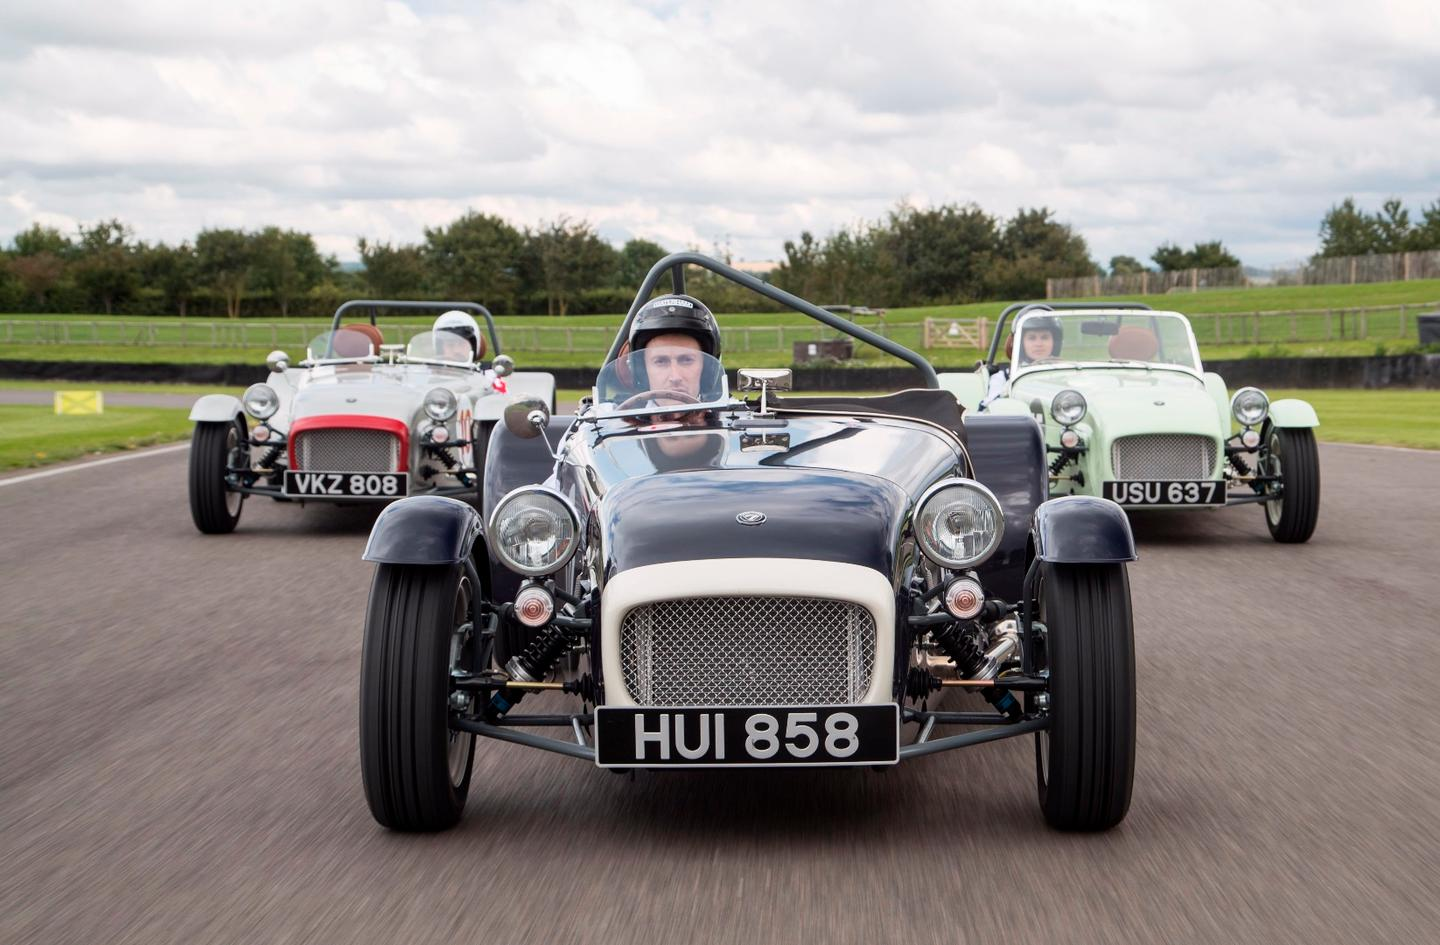 The Caterham SuperSprint was launched at the Goodwood Revival